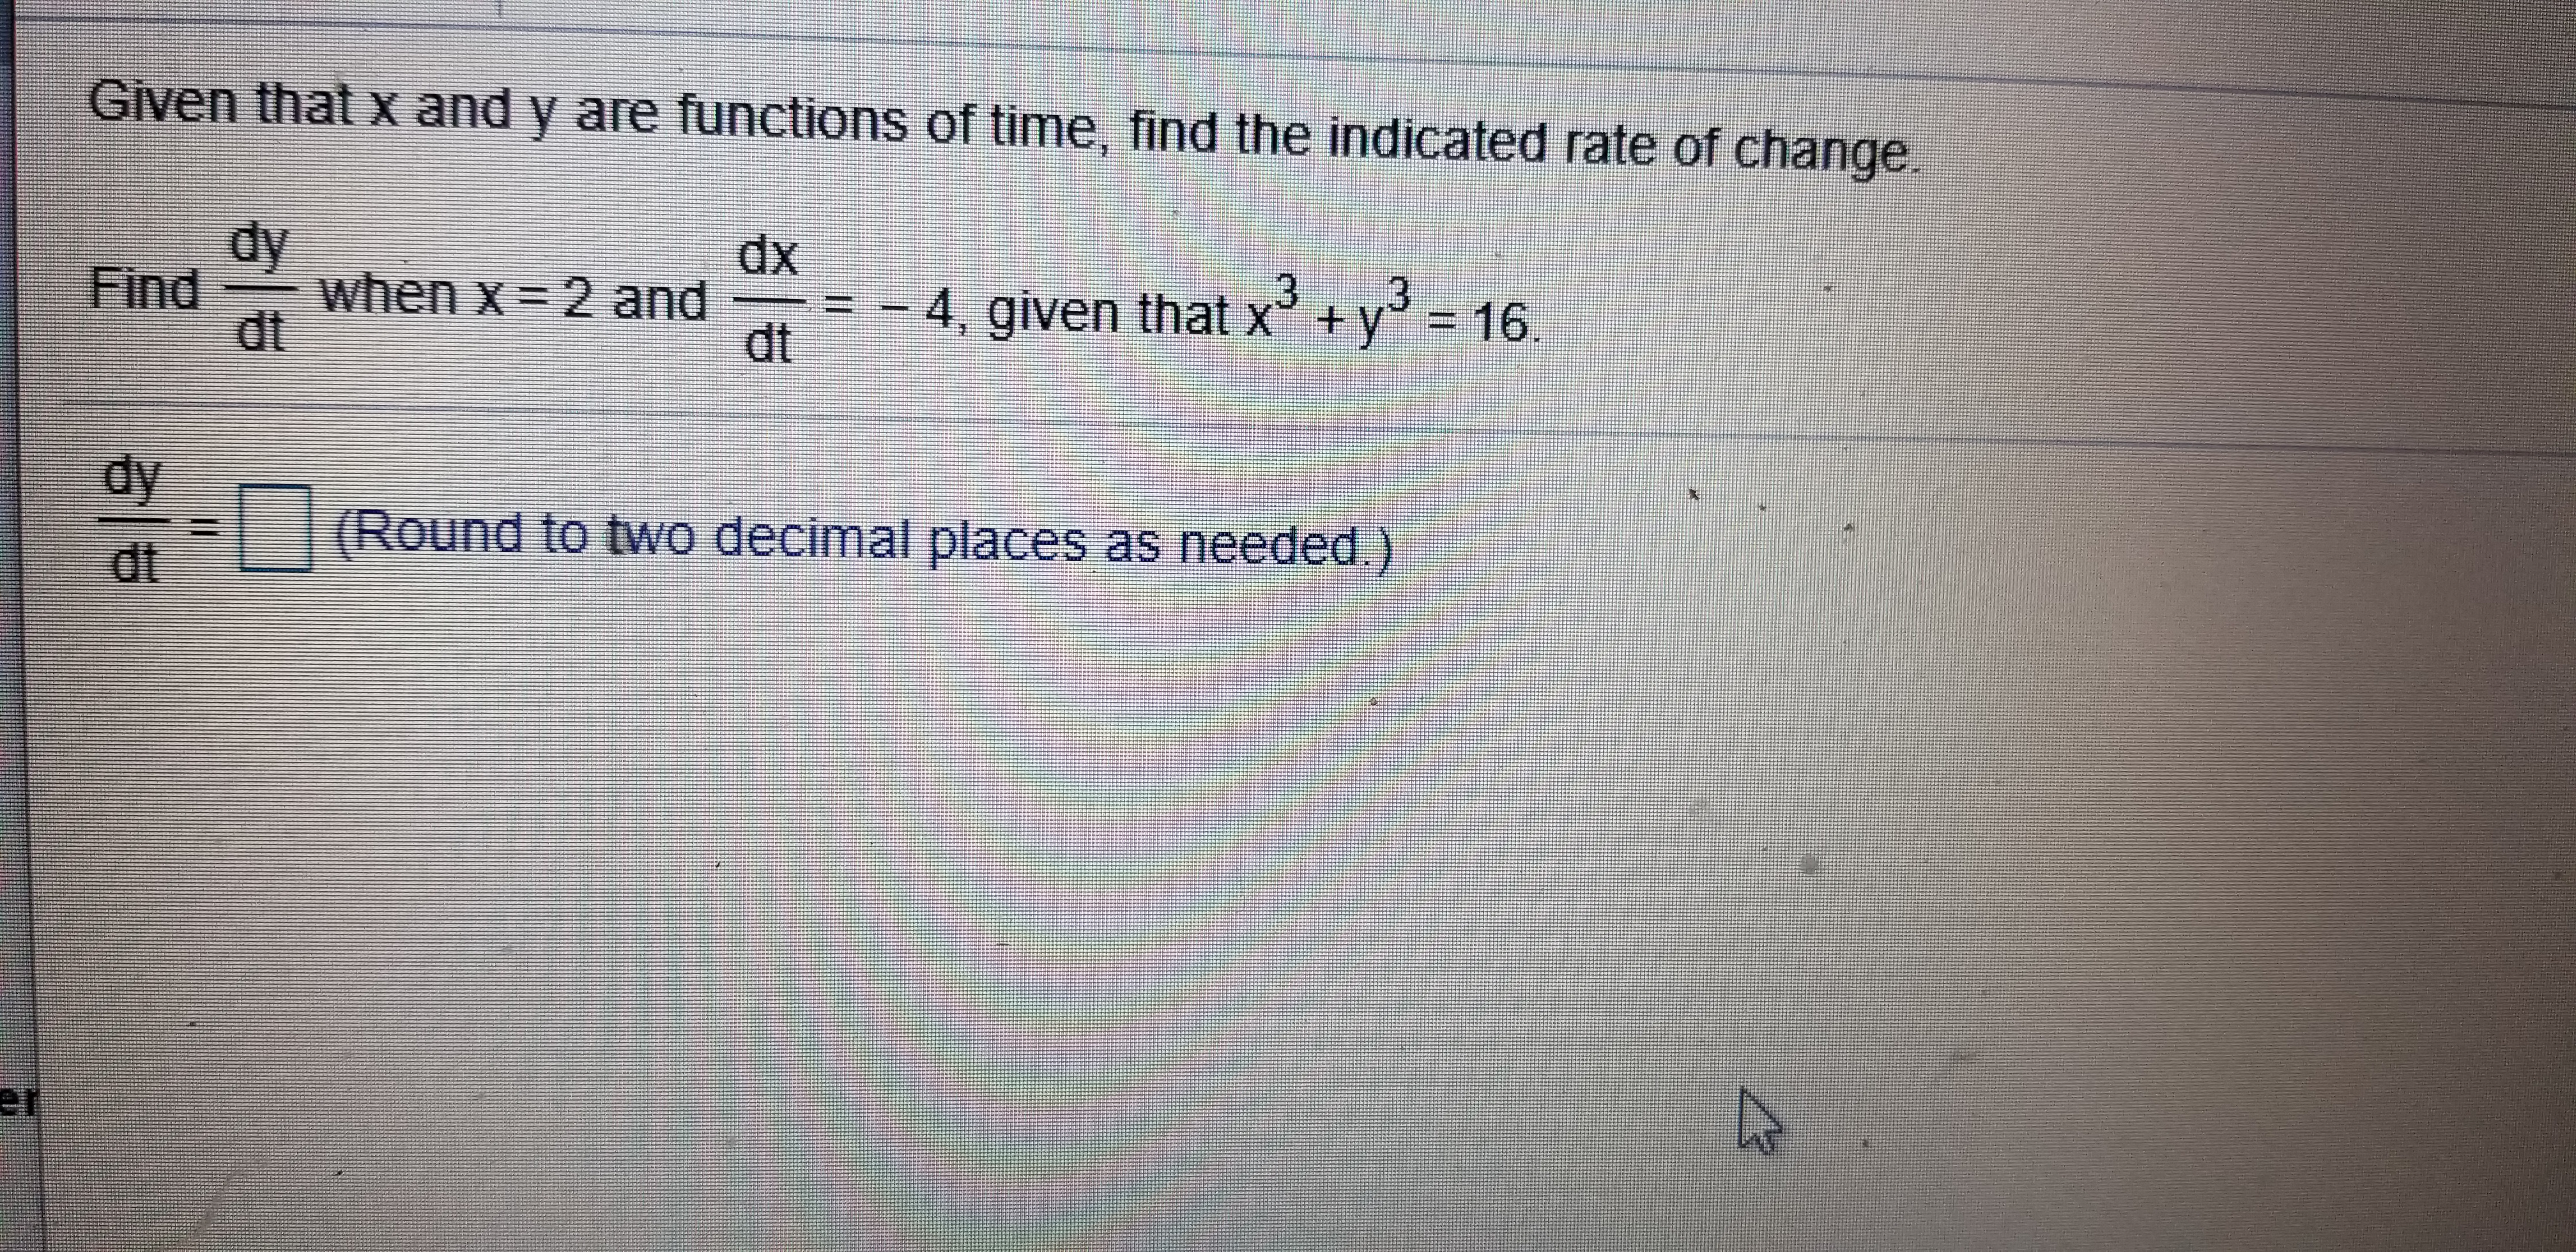 Given that x and y are functions of time, find the indicated rate of change. dy when x 2 and dt dx Find 3 y = 16. -4, given that x + dt dy (Round to two decimal places as needed) dt er